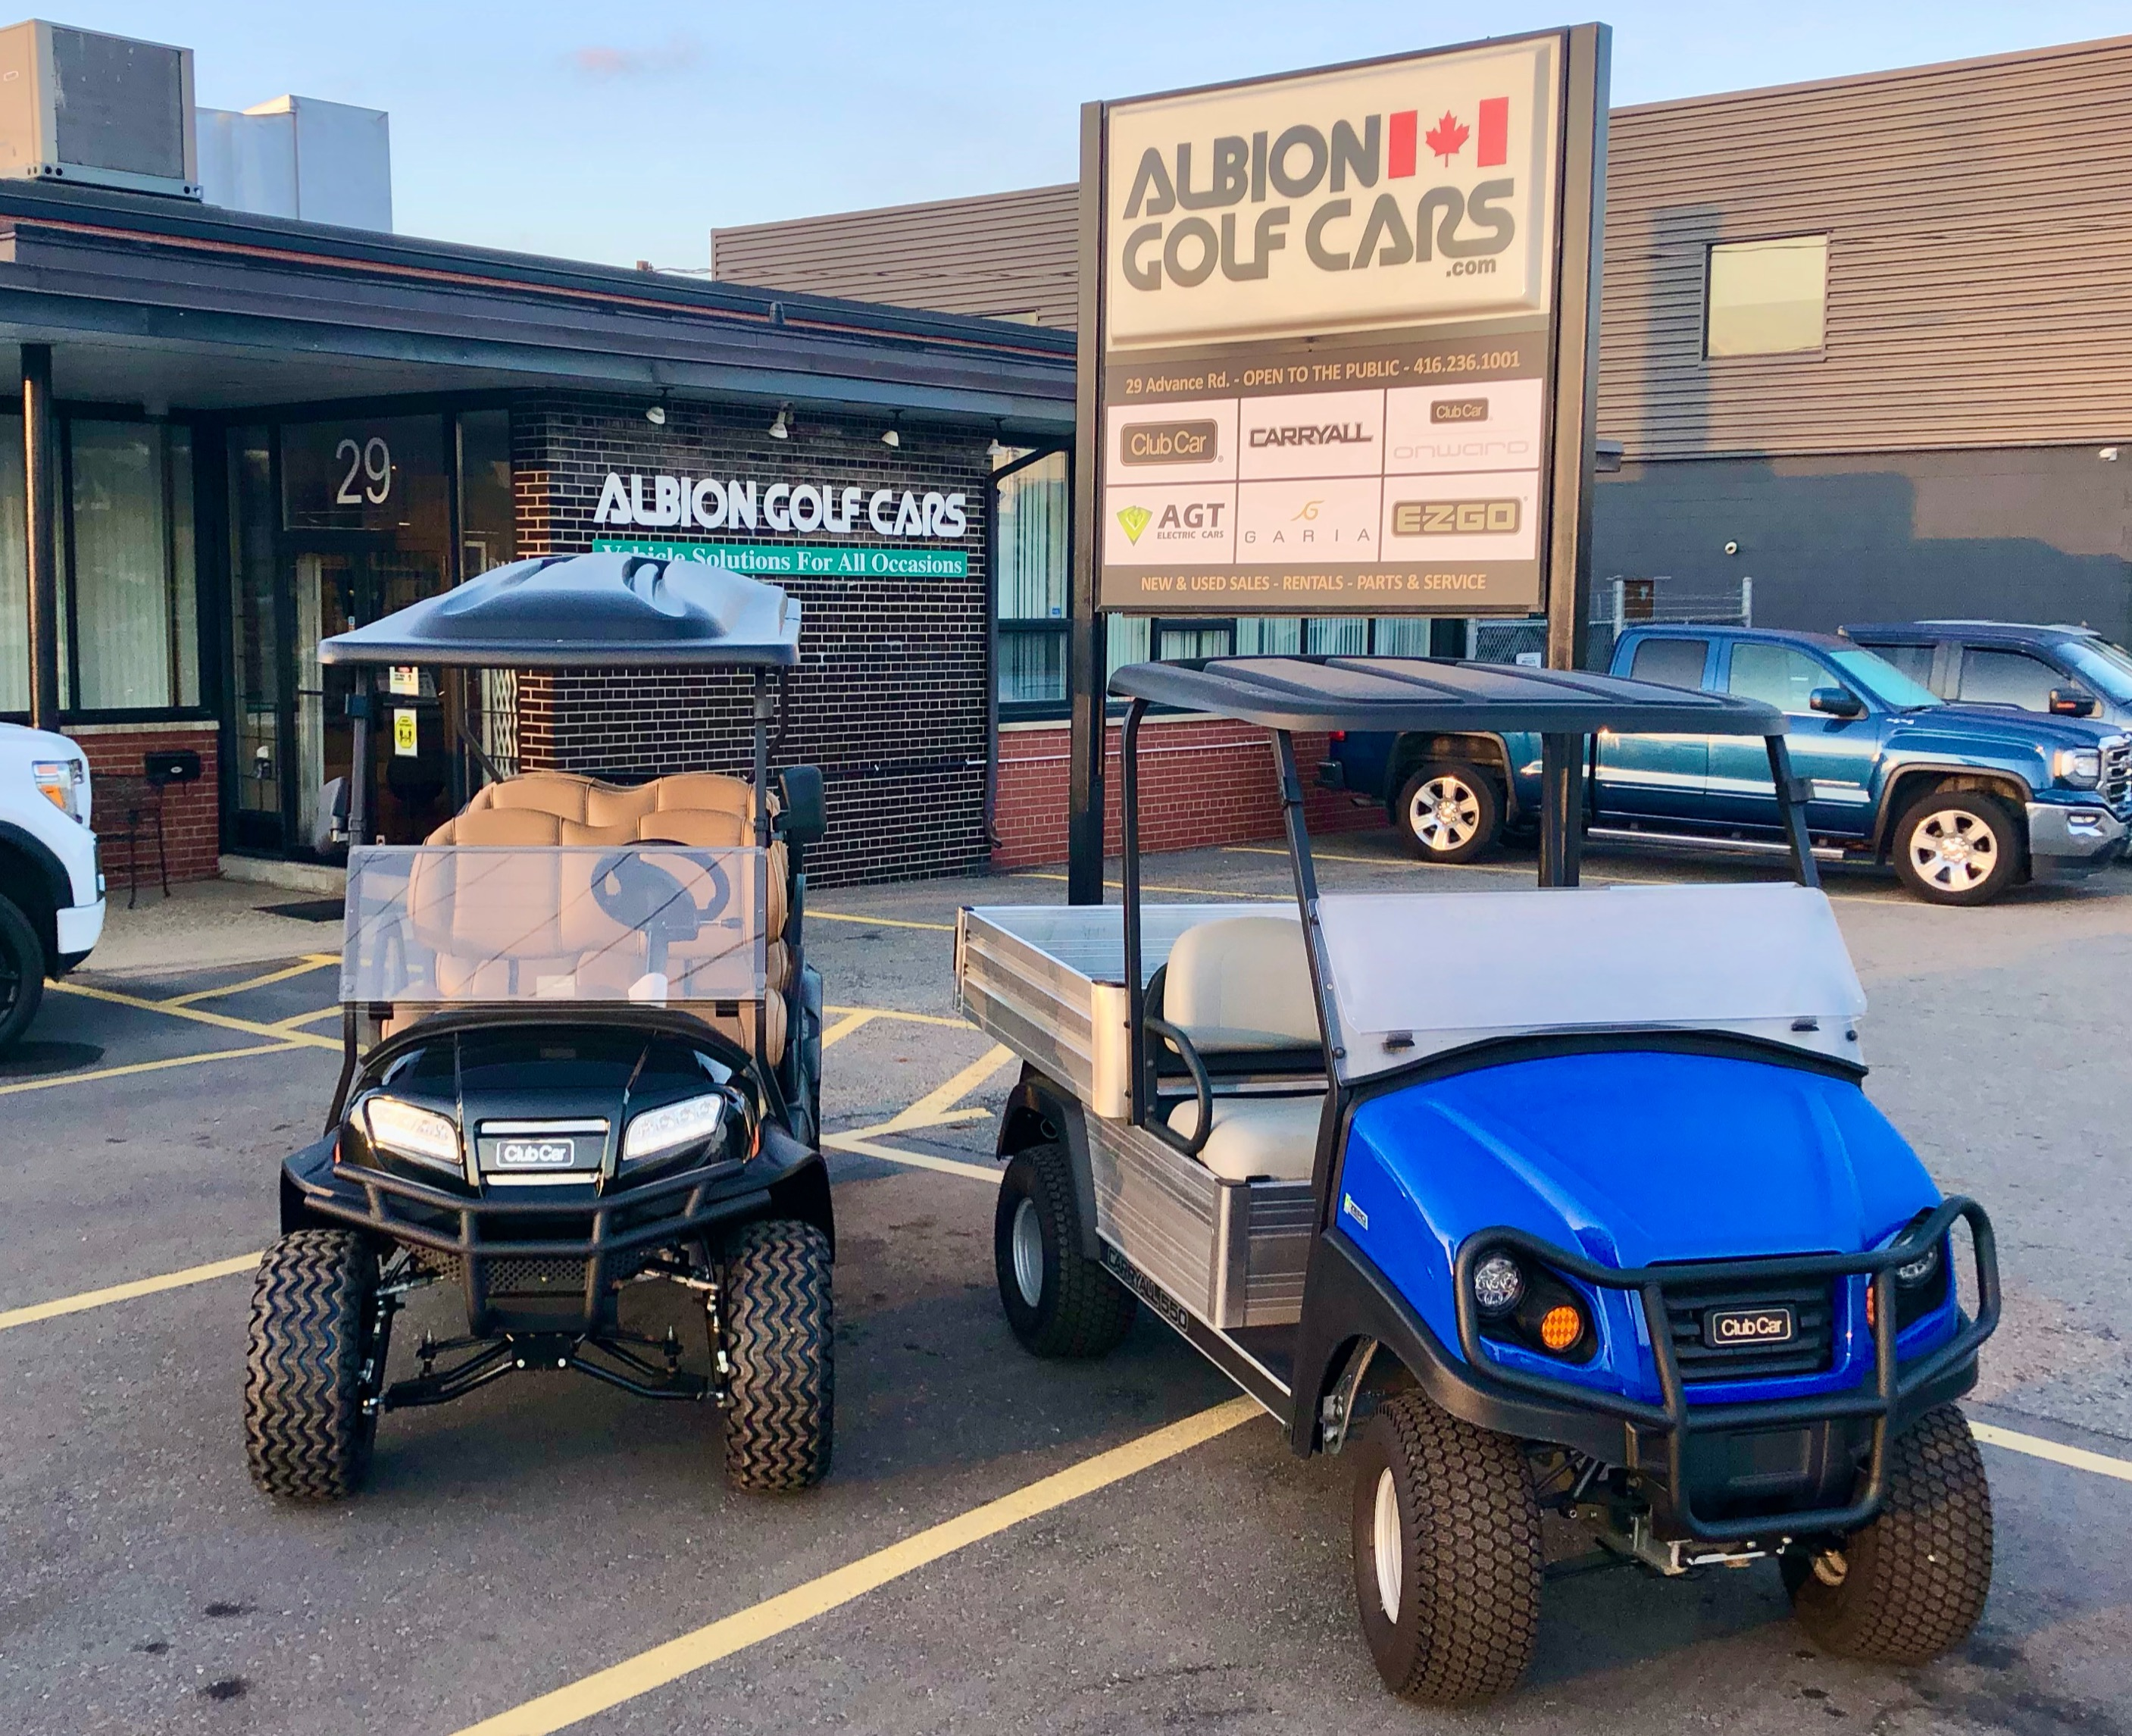 ALBION GOLF CARS